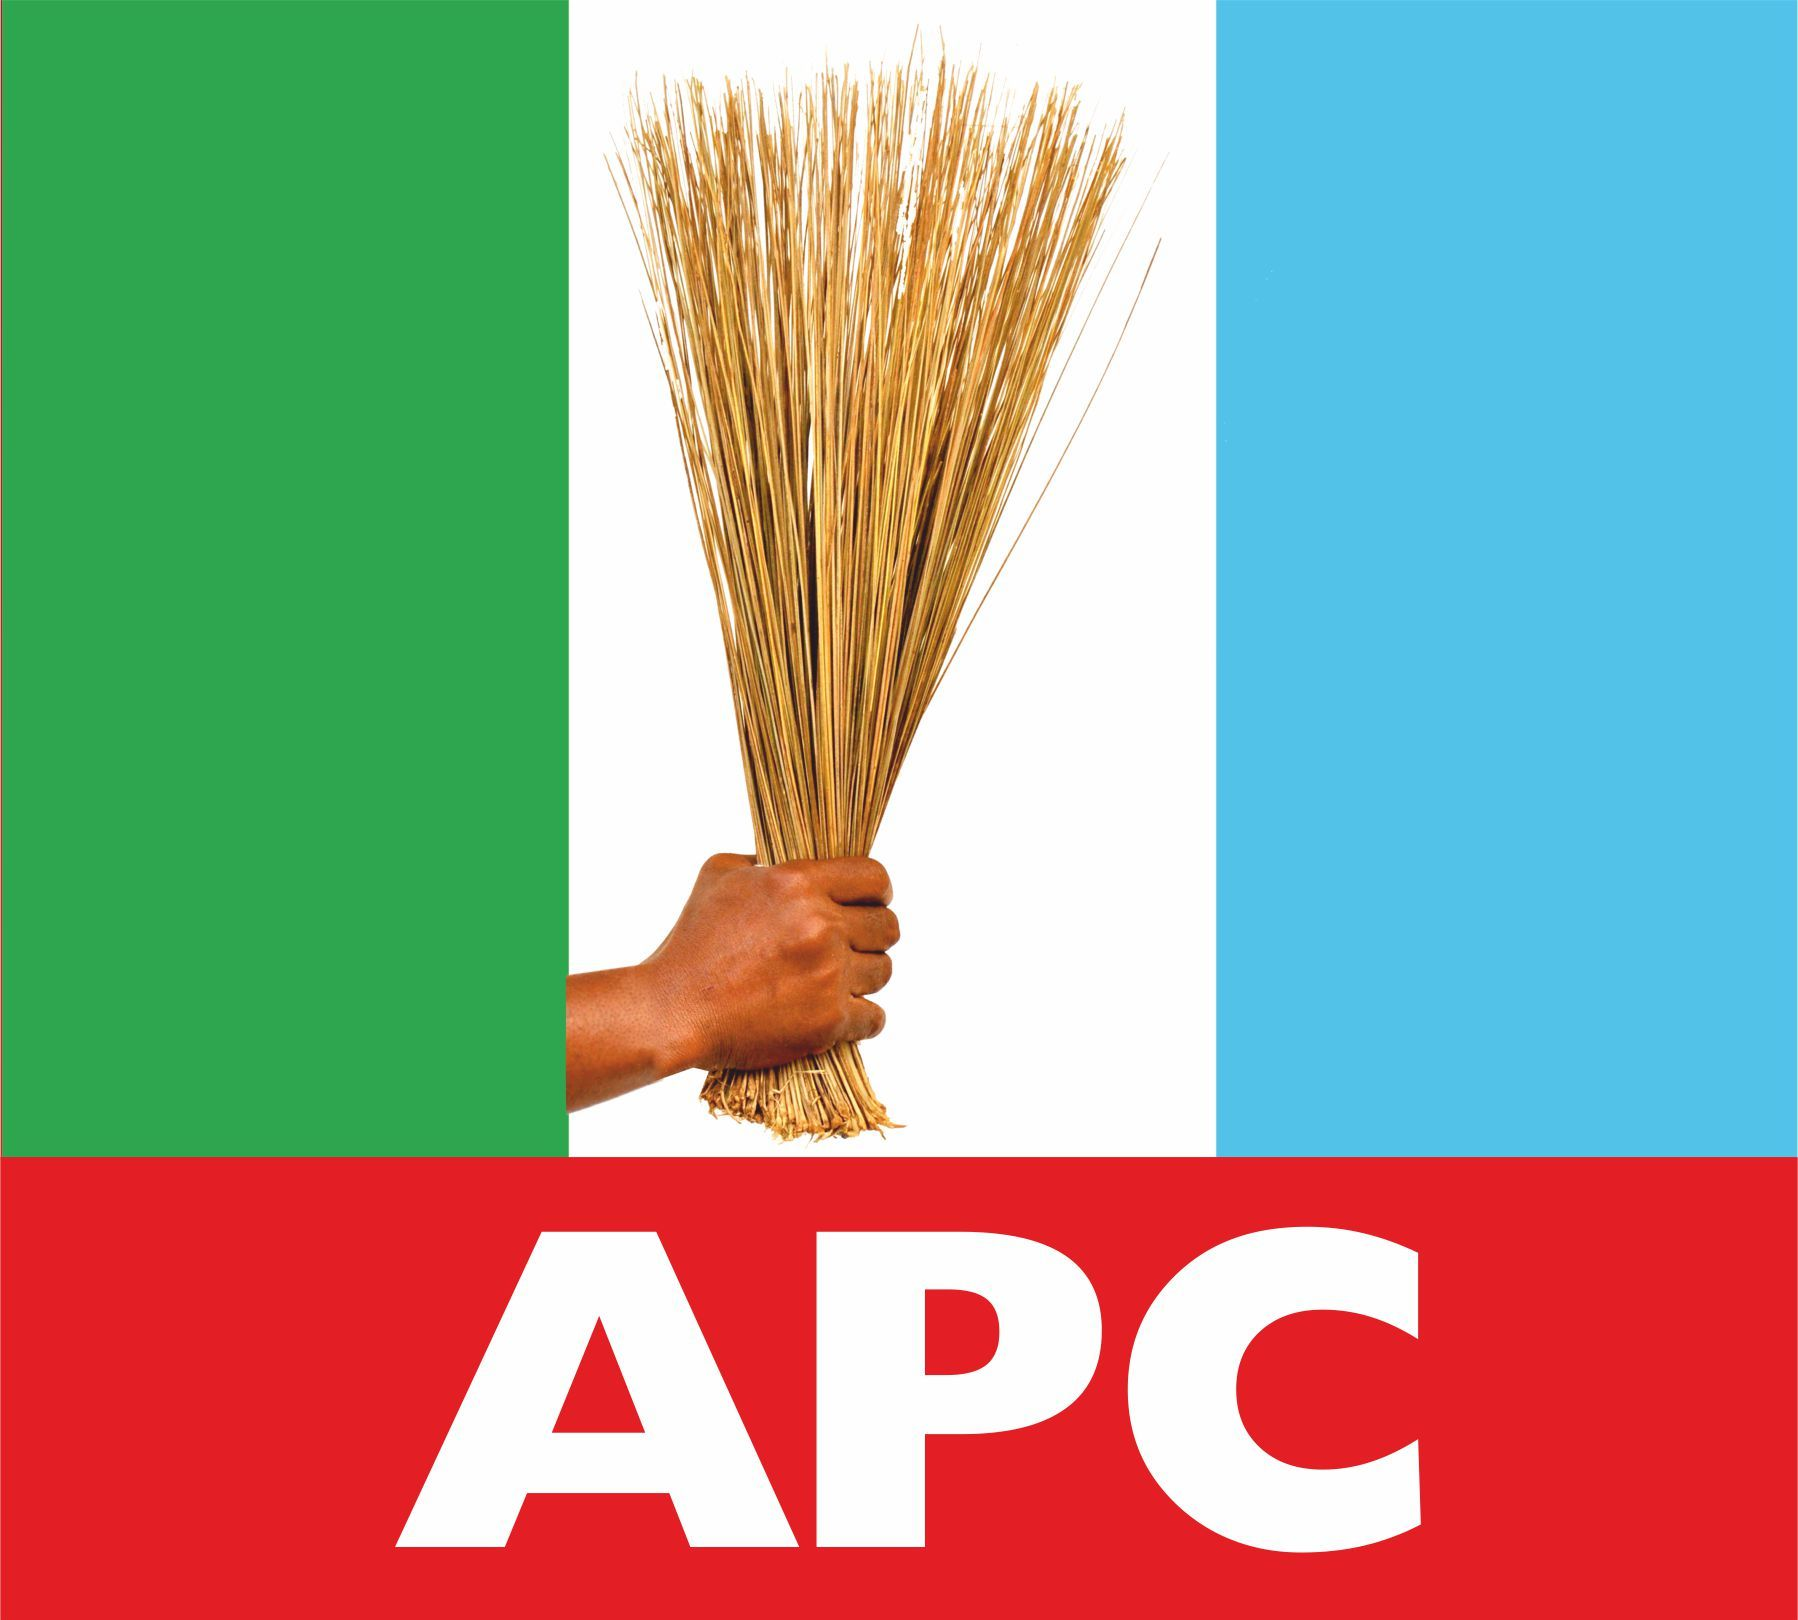 Lagos APC Congress: Replicate seamless transition nationwide, Ekwunife tells party